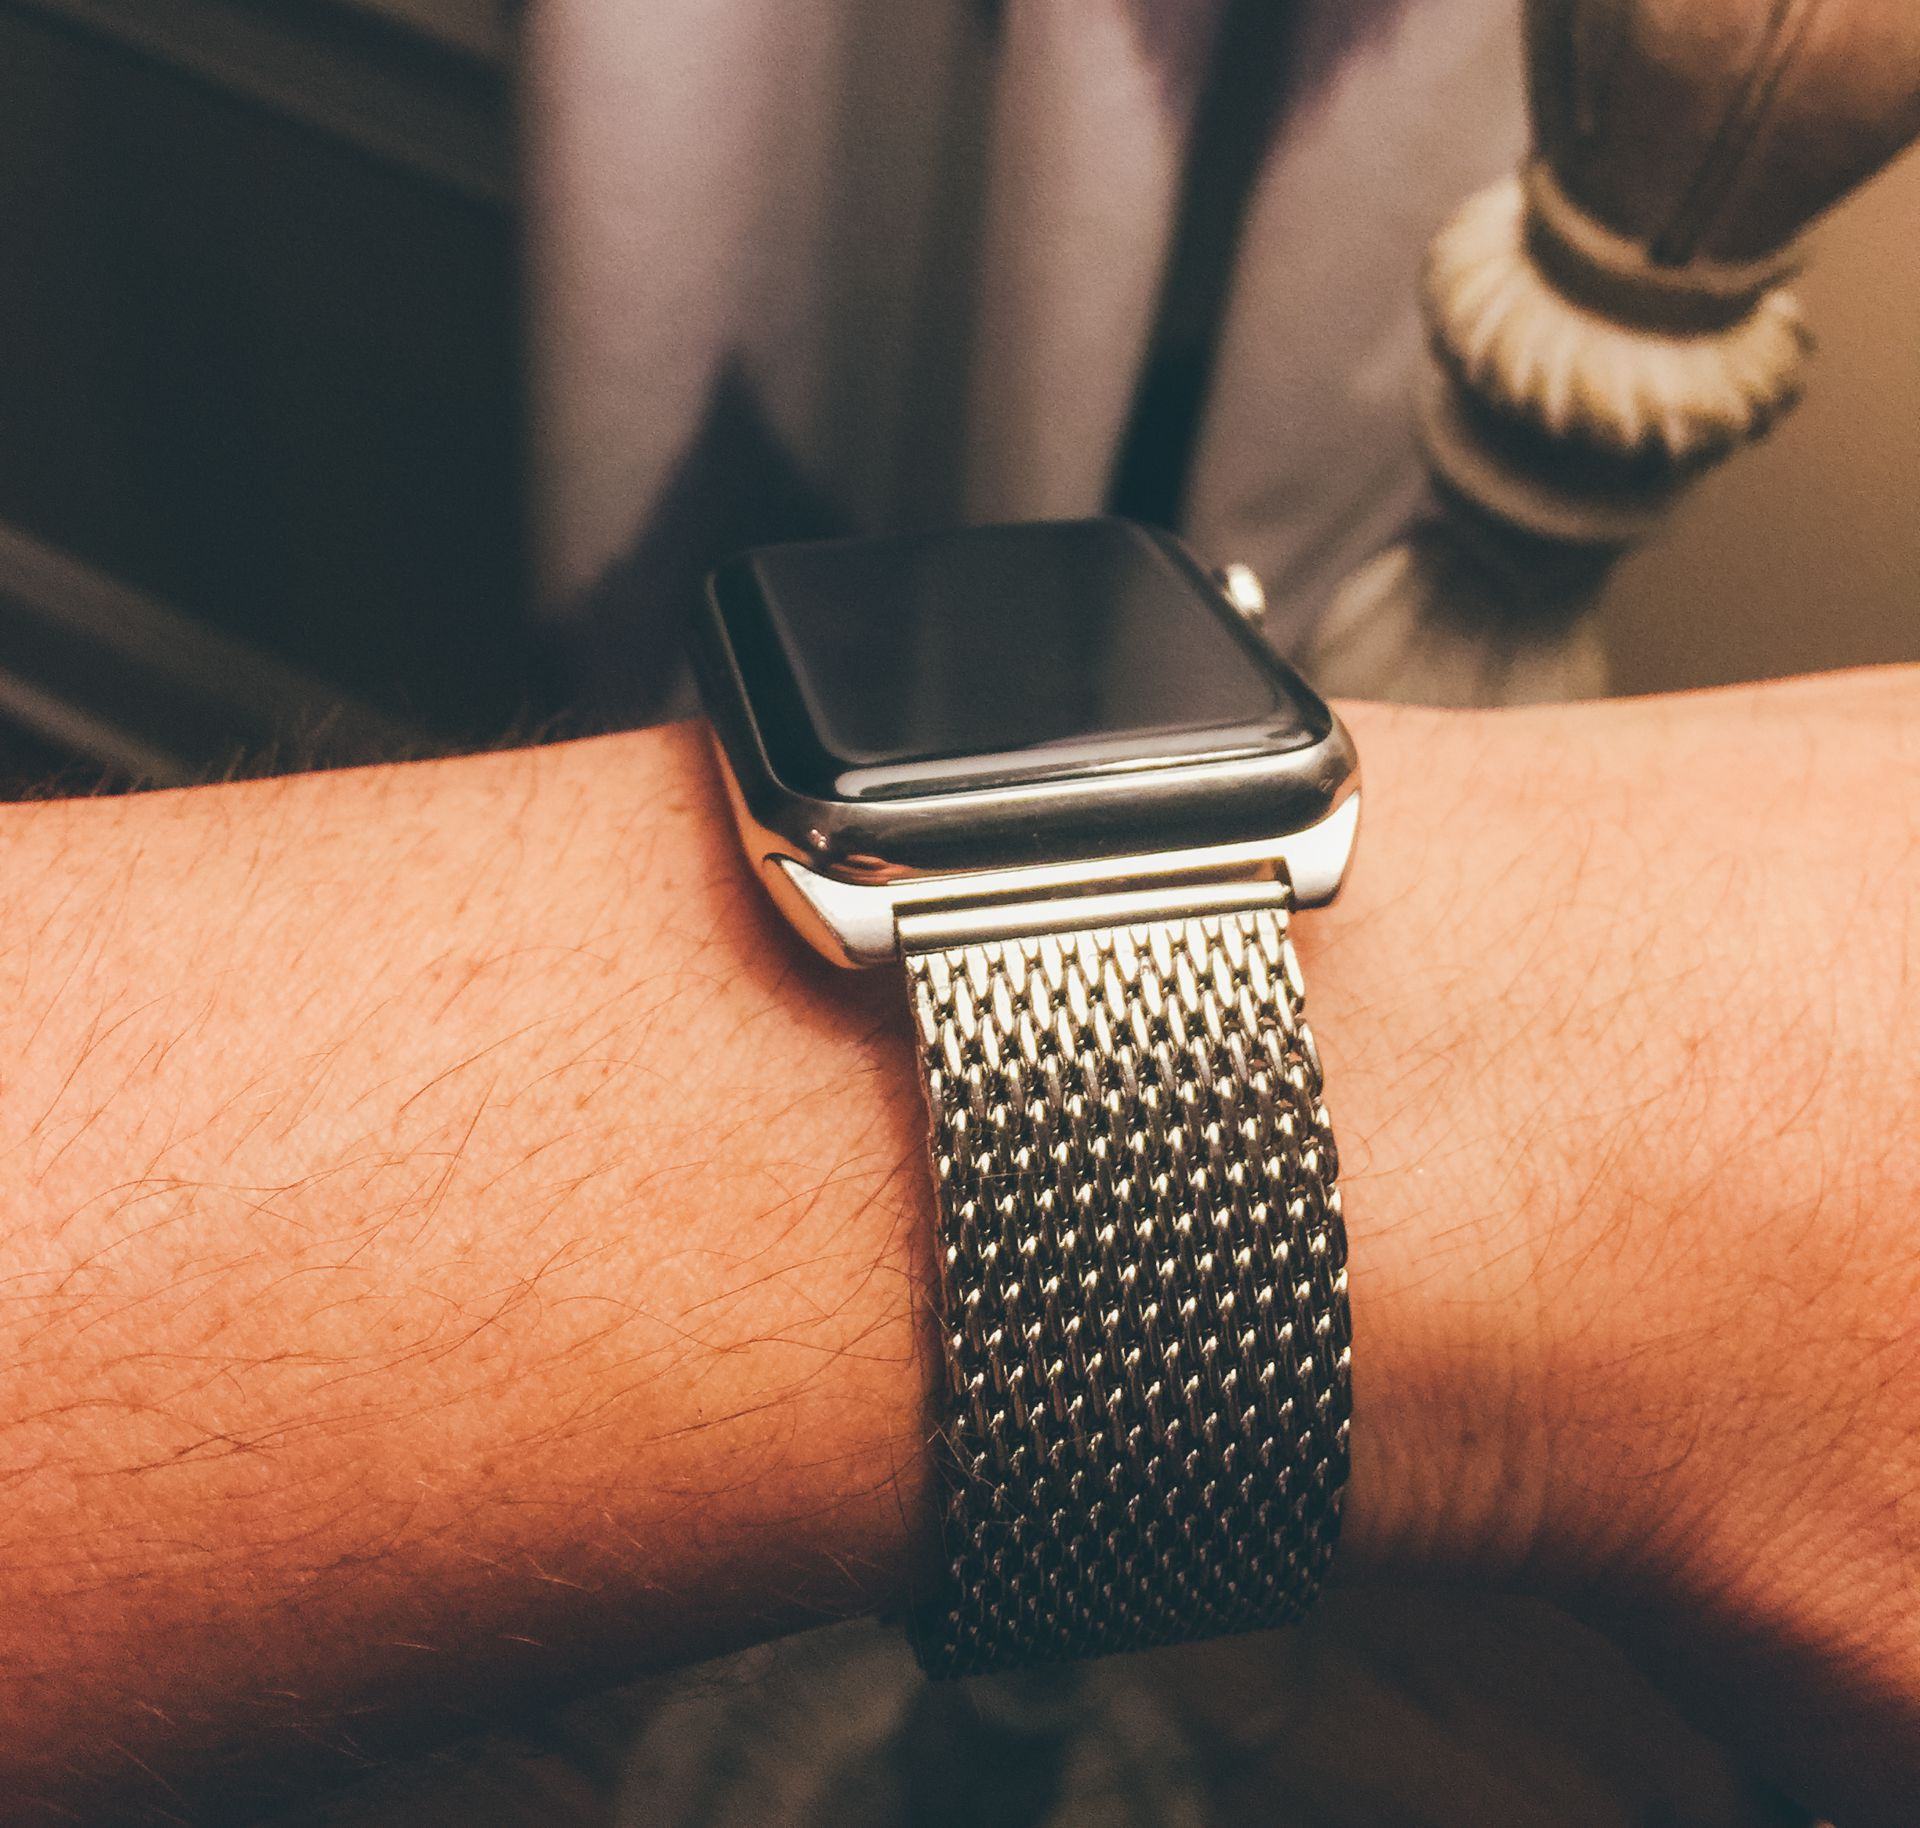 The mesh metal is similar to Apple's Milanese Loop.